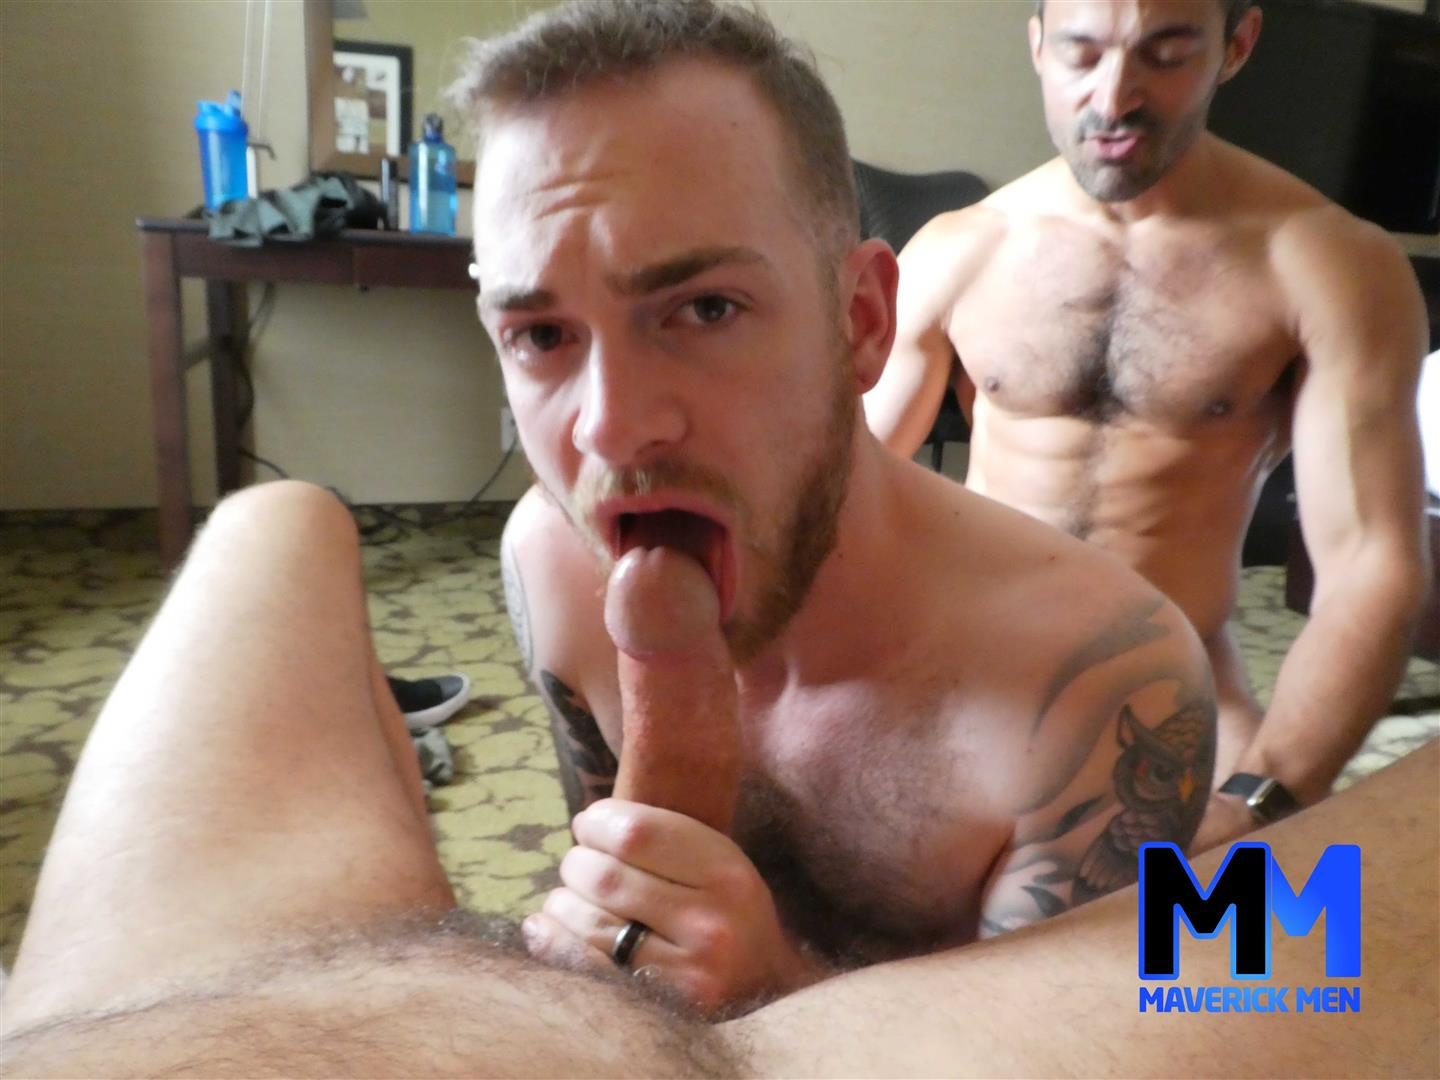 Maverick-Men-Chase-Thick-Dick-Daddies-Bareback-Fucking-Young-Hairy-Guy-4 The Maverick Men Daddies Fill A Hot Young Hairy Ass Full Of Cum